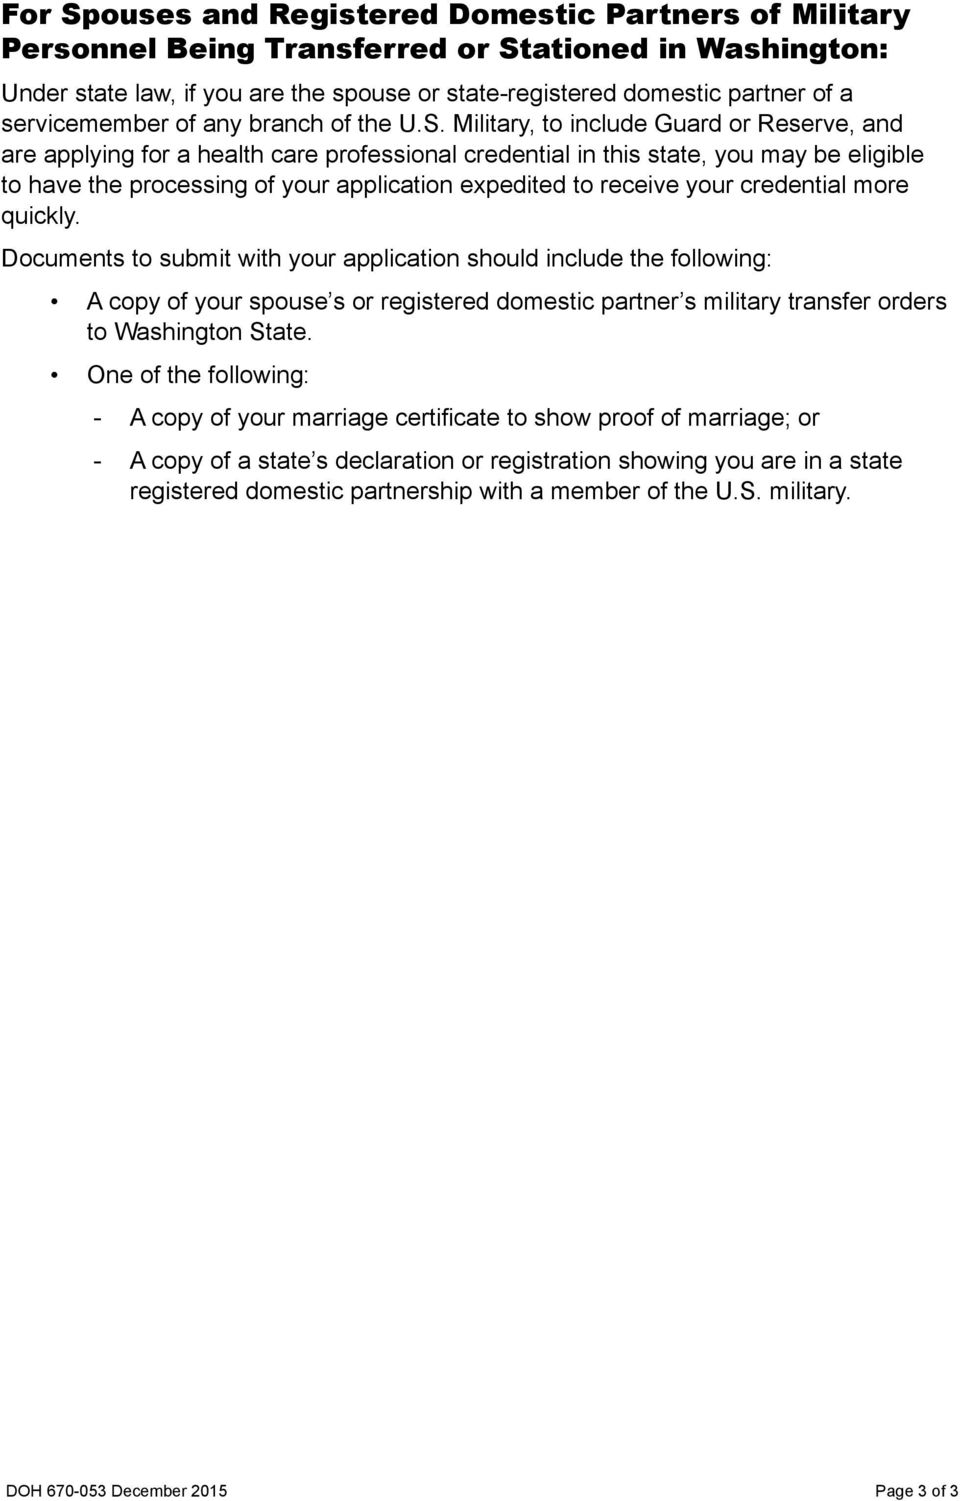 Military, to include Guard or Reserve, and are applying for a health care professional credential in this state, you may be eligible to have the processing of your application expedited to receive